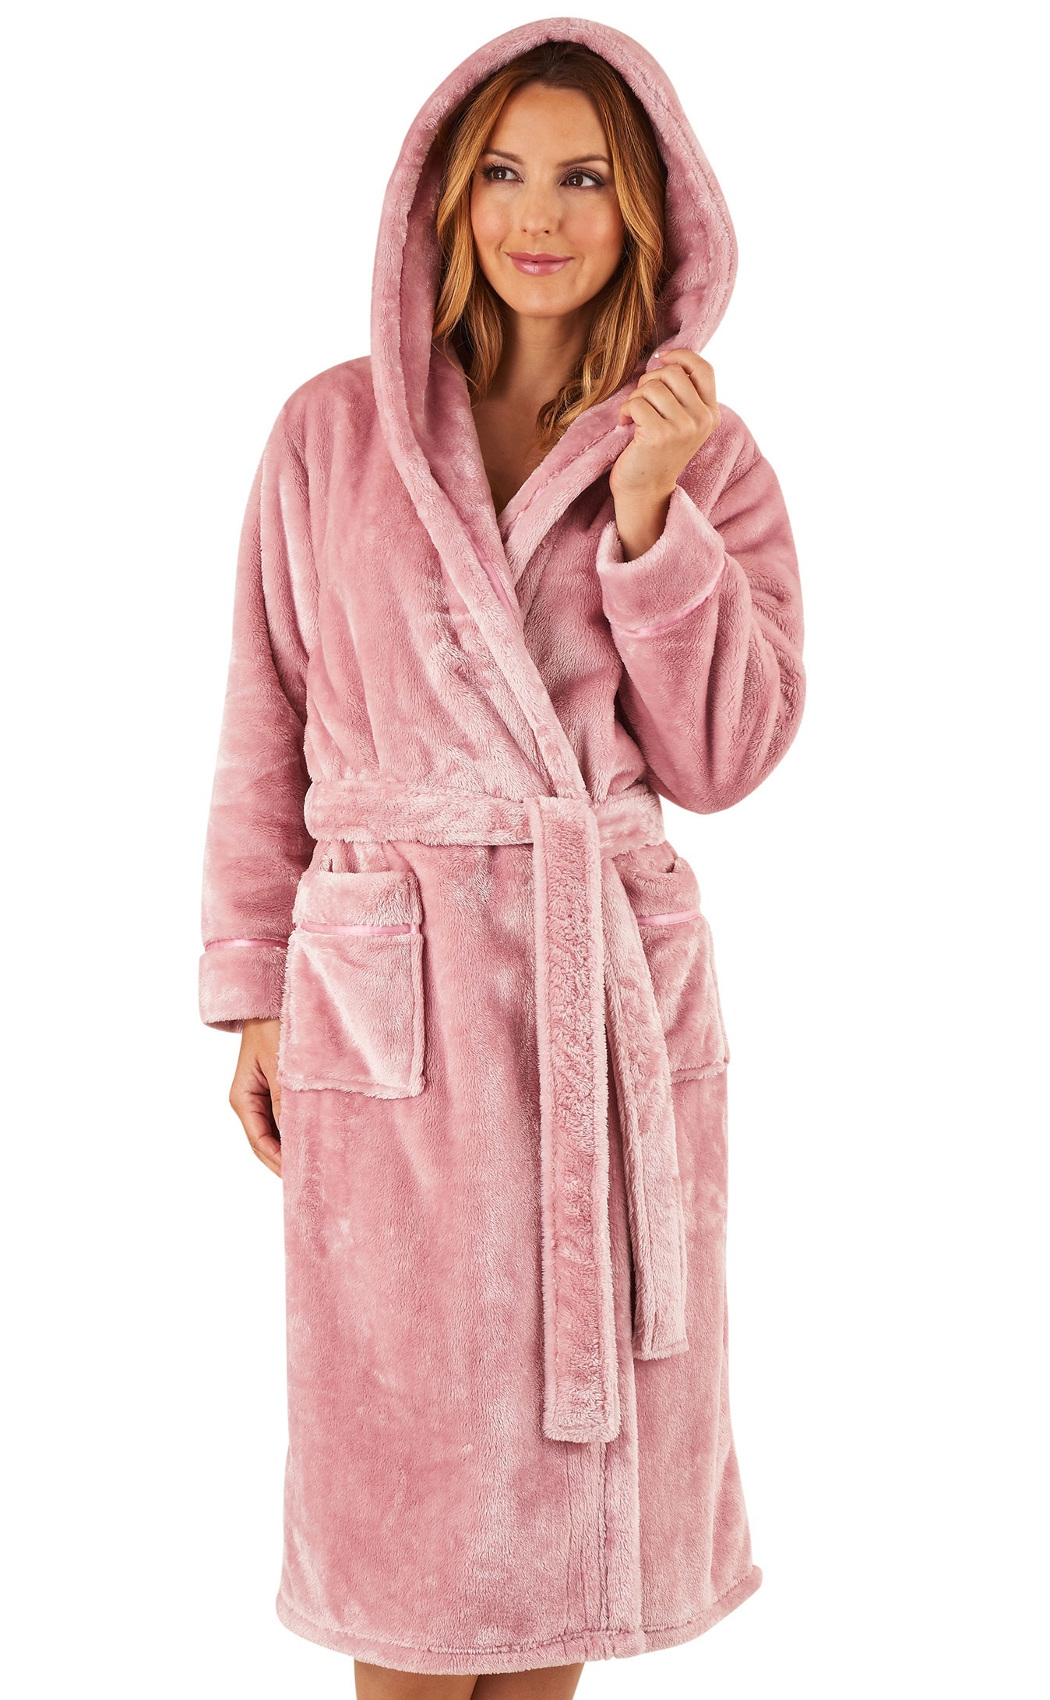 Find great deals on eBay for Womens Hooded Dressing Gown in Sleepwear and Robes for Adult Women. Shop with confidence.